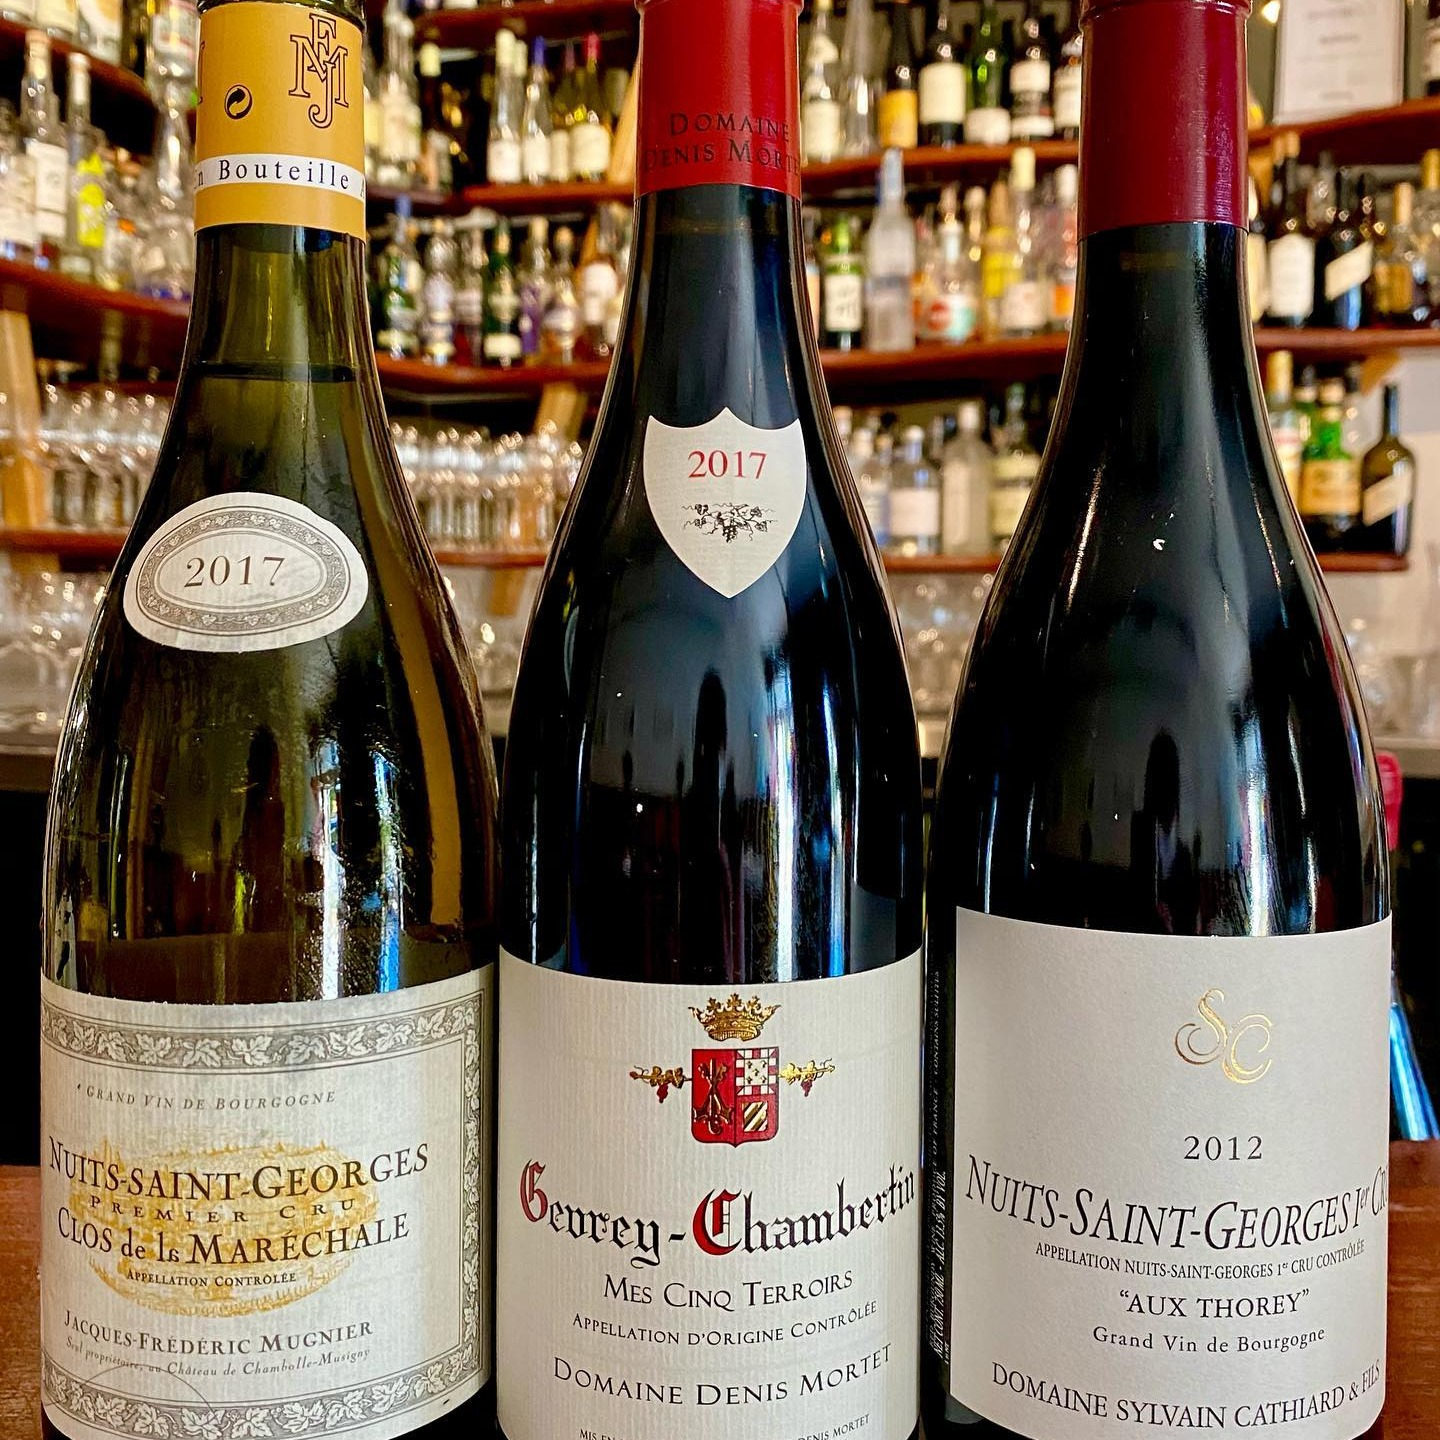 VIEW OUR WINES BY THE GLASS LIST HERE